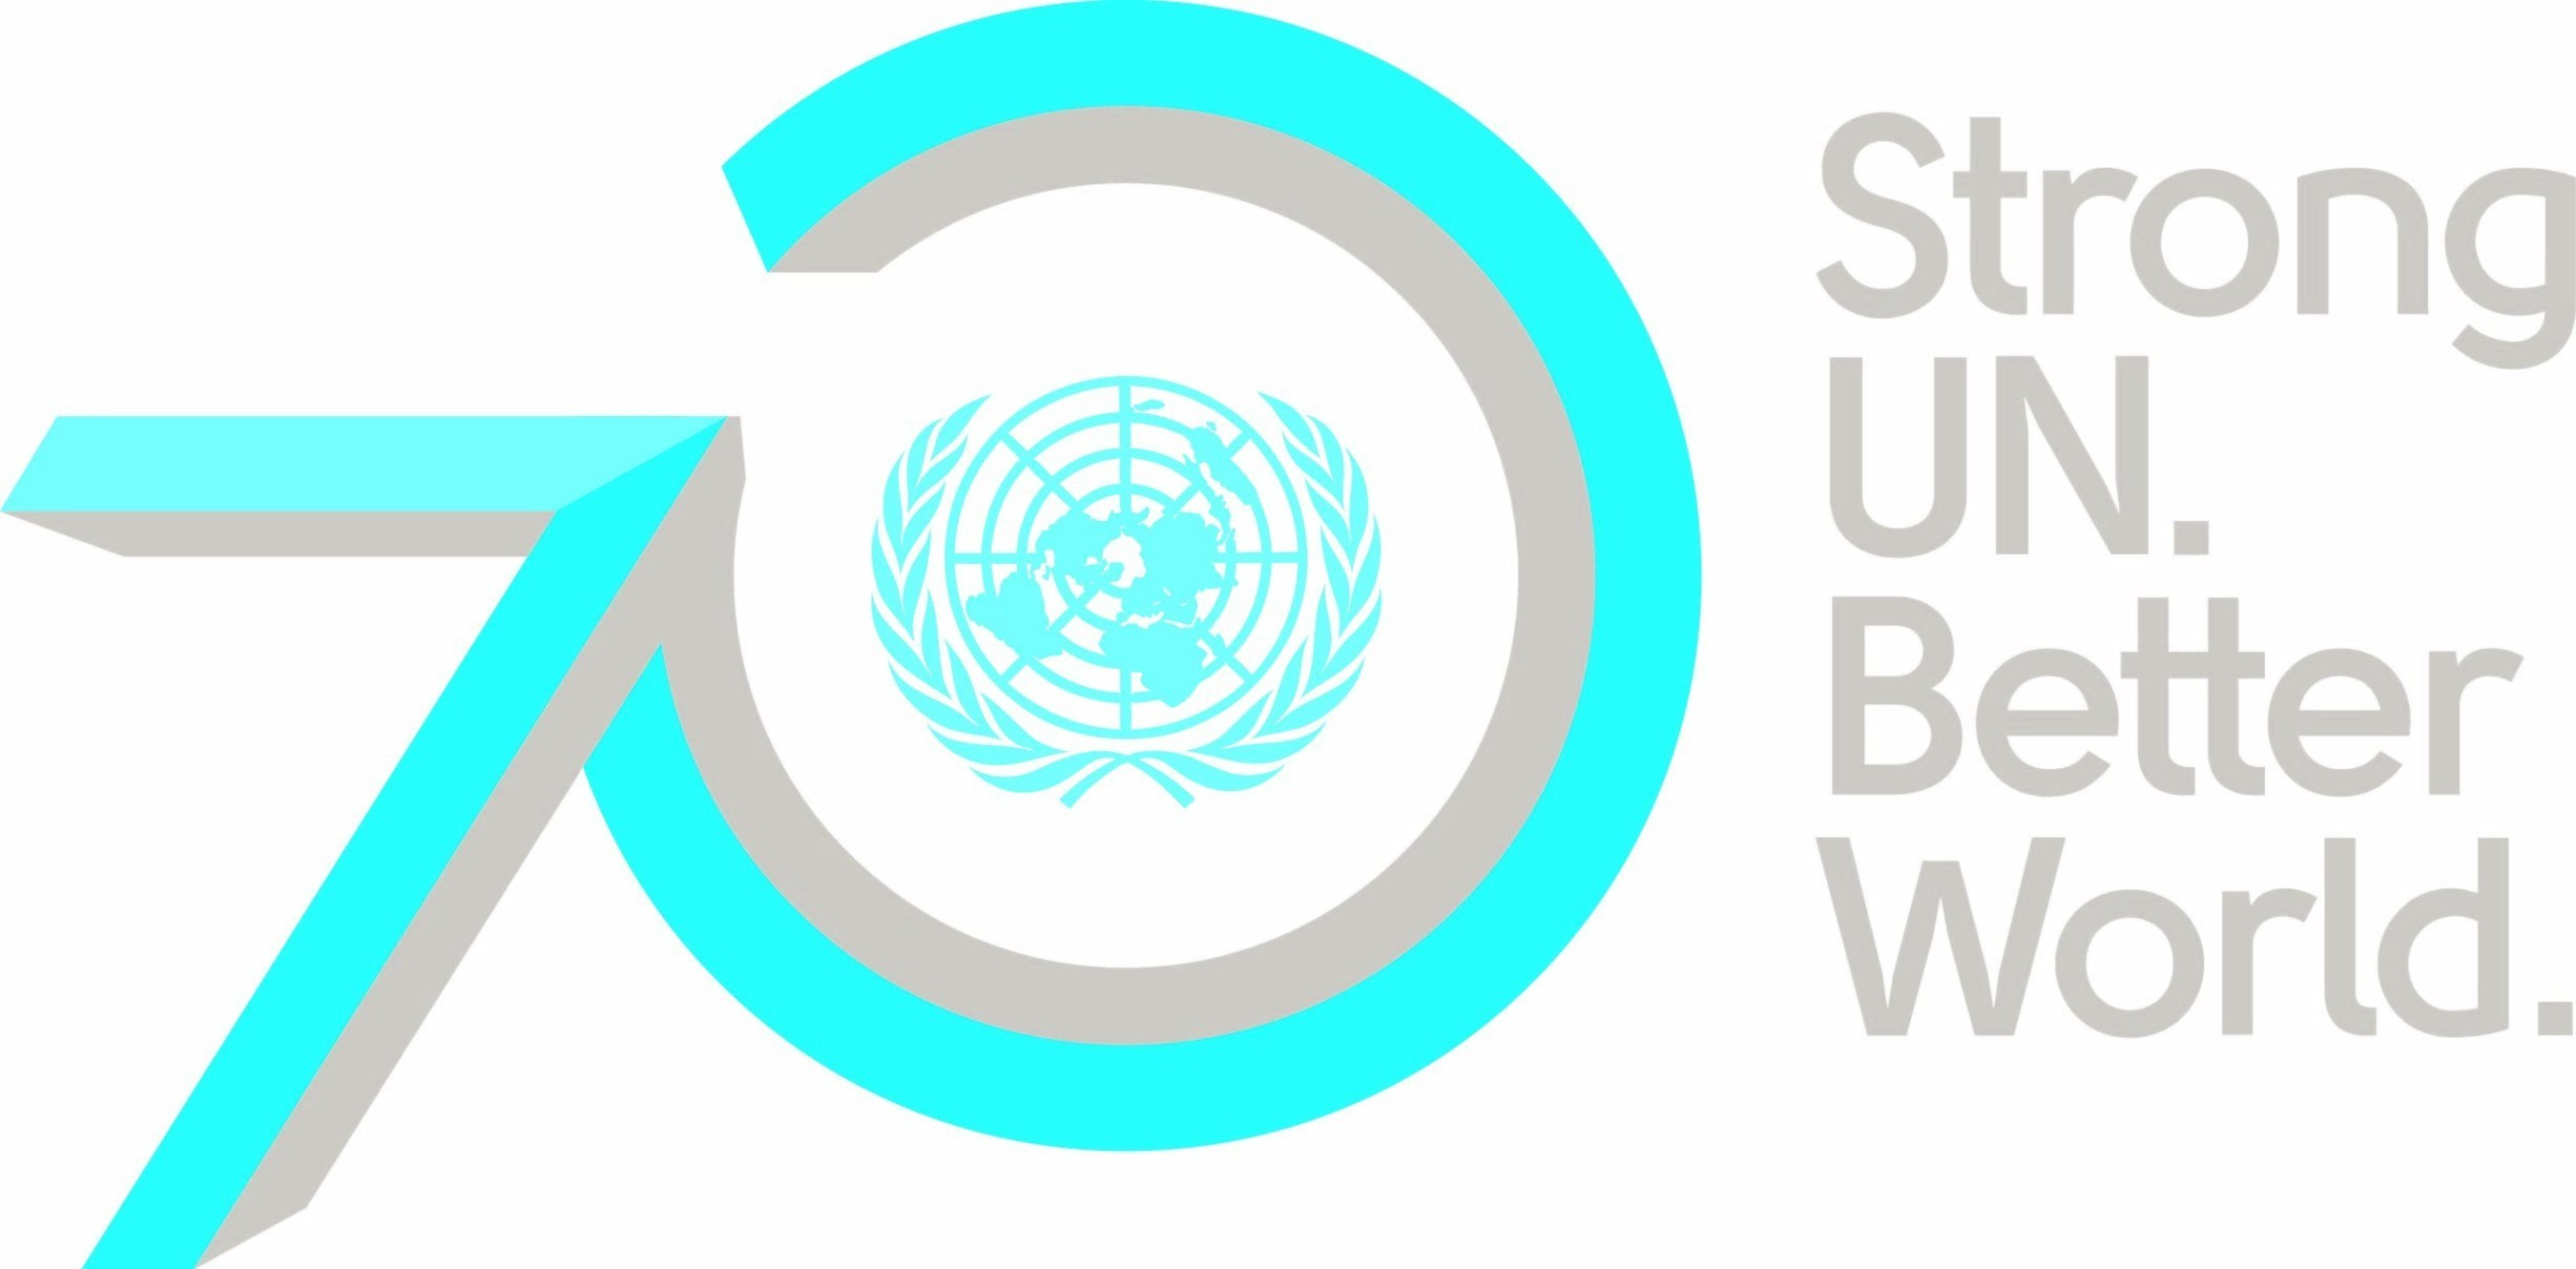 United Nations, to mark the International Day of Happiness and commemorate the United Nations' 70th Anniversary.